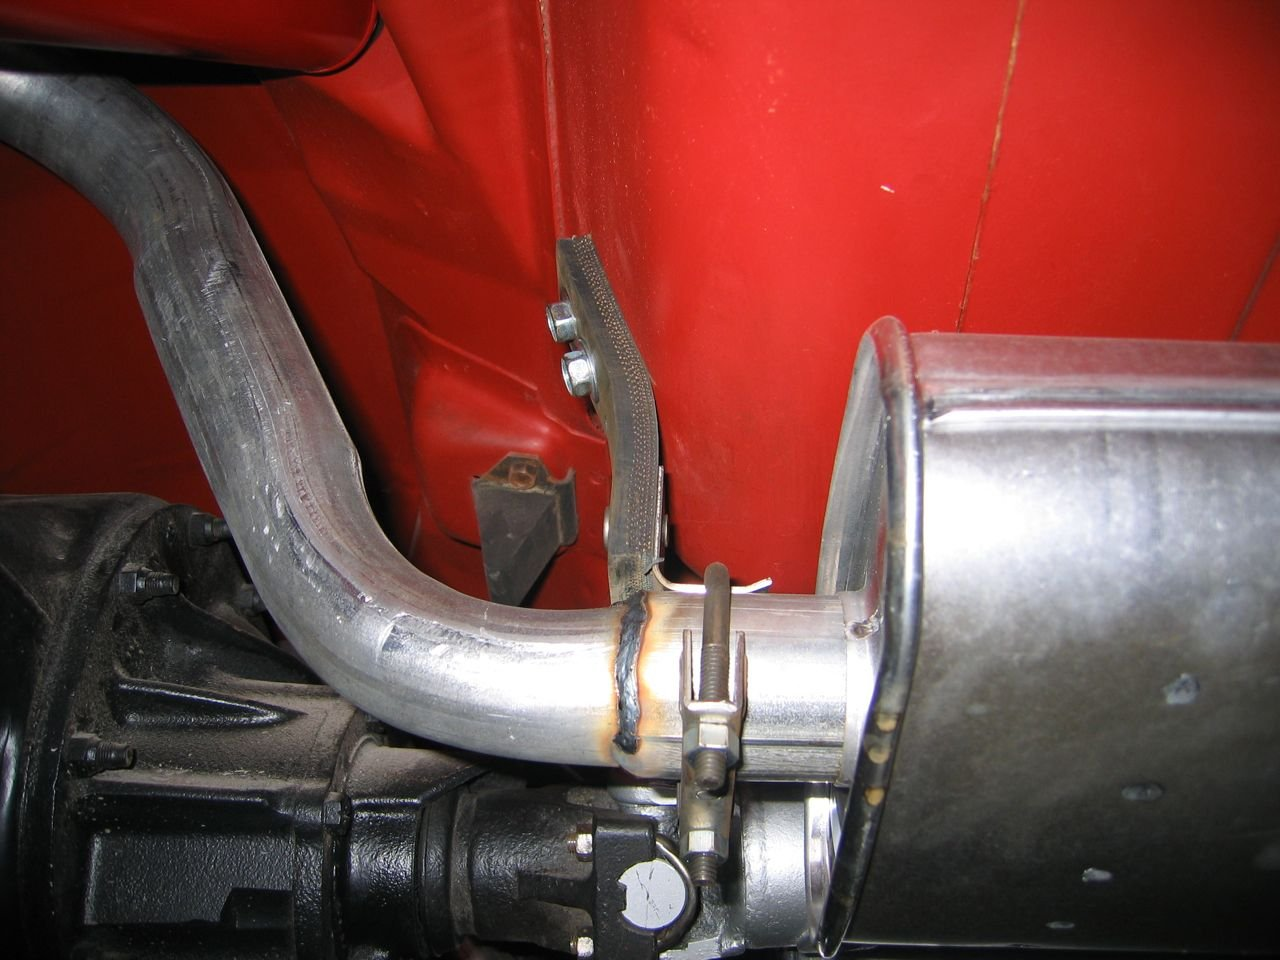 pypes exhaust system with a gt valance